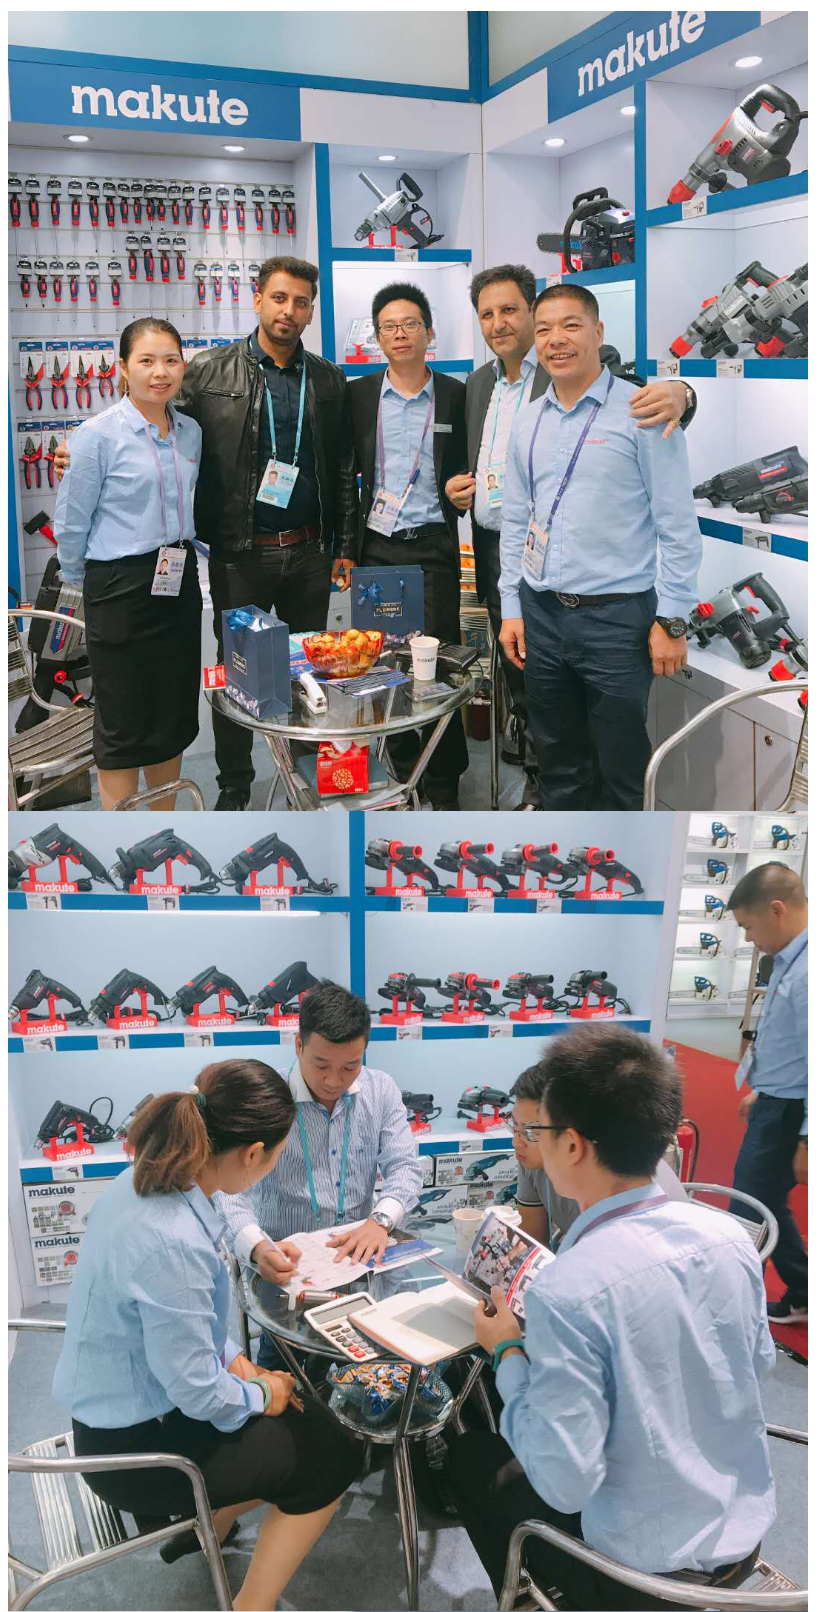 makute---The-122nd-Canton-Fair---Makute-power-tools_01